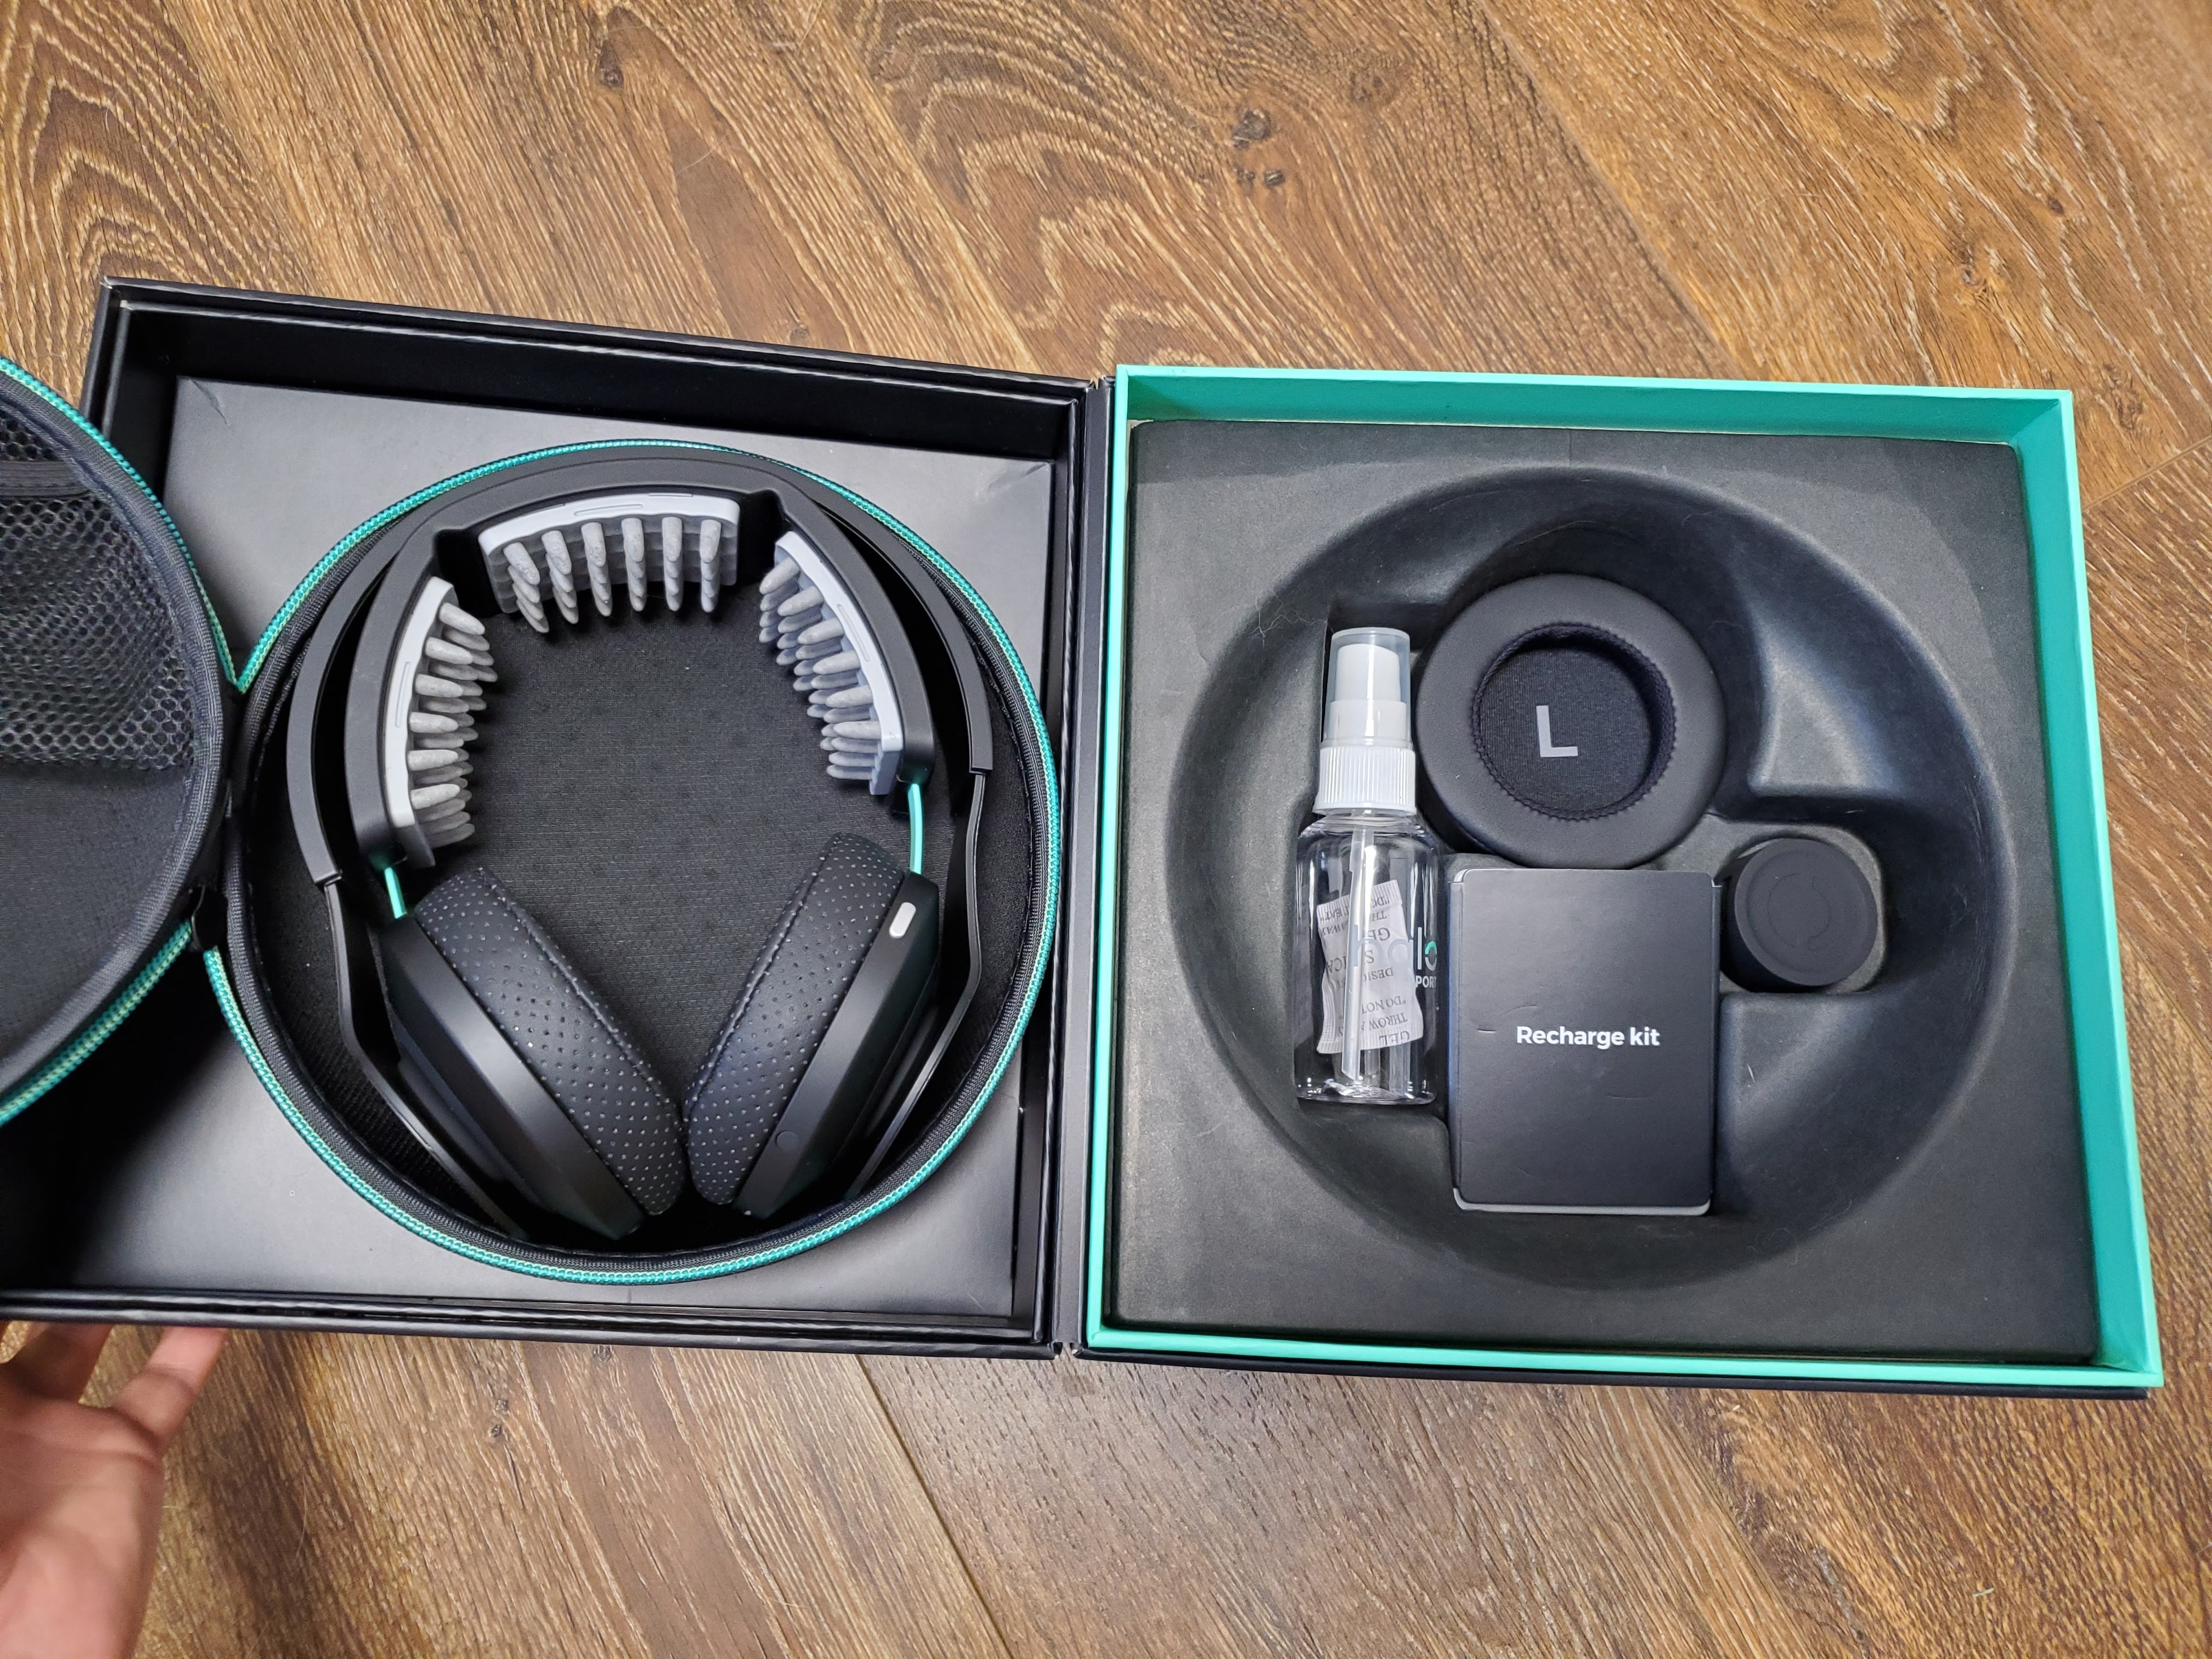 Halo sport headphones, case, spray bottle, recharge kit and accessories